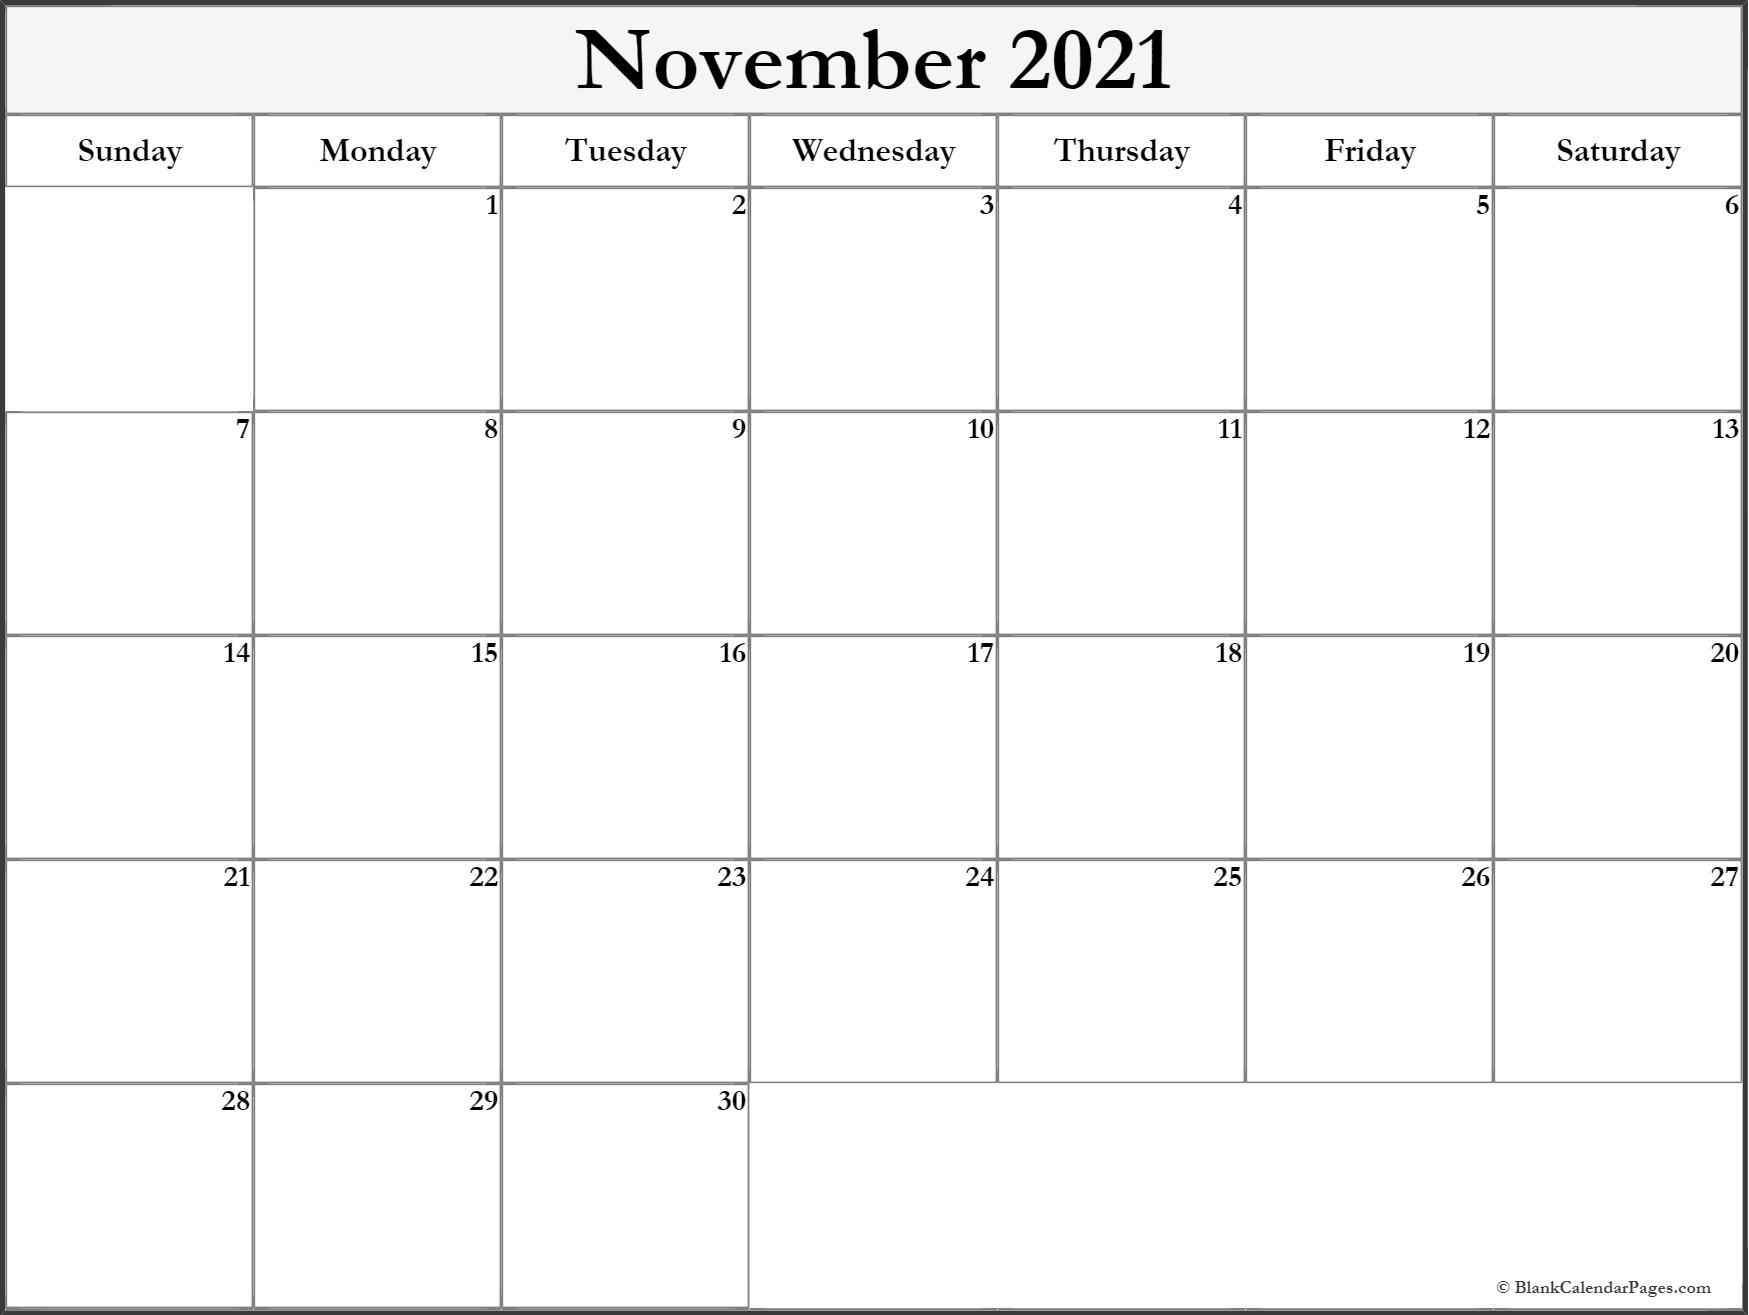 November 2021 monthly calendar printable